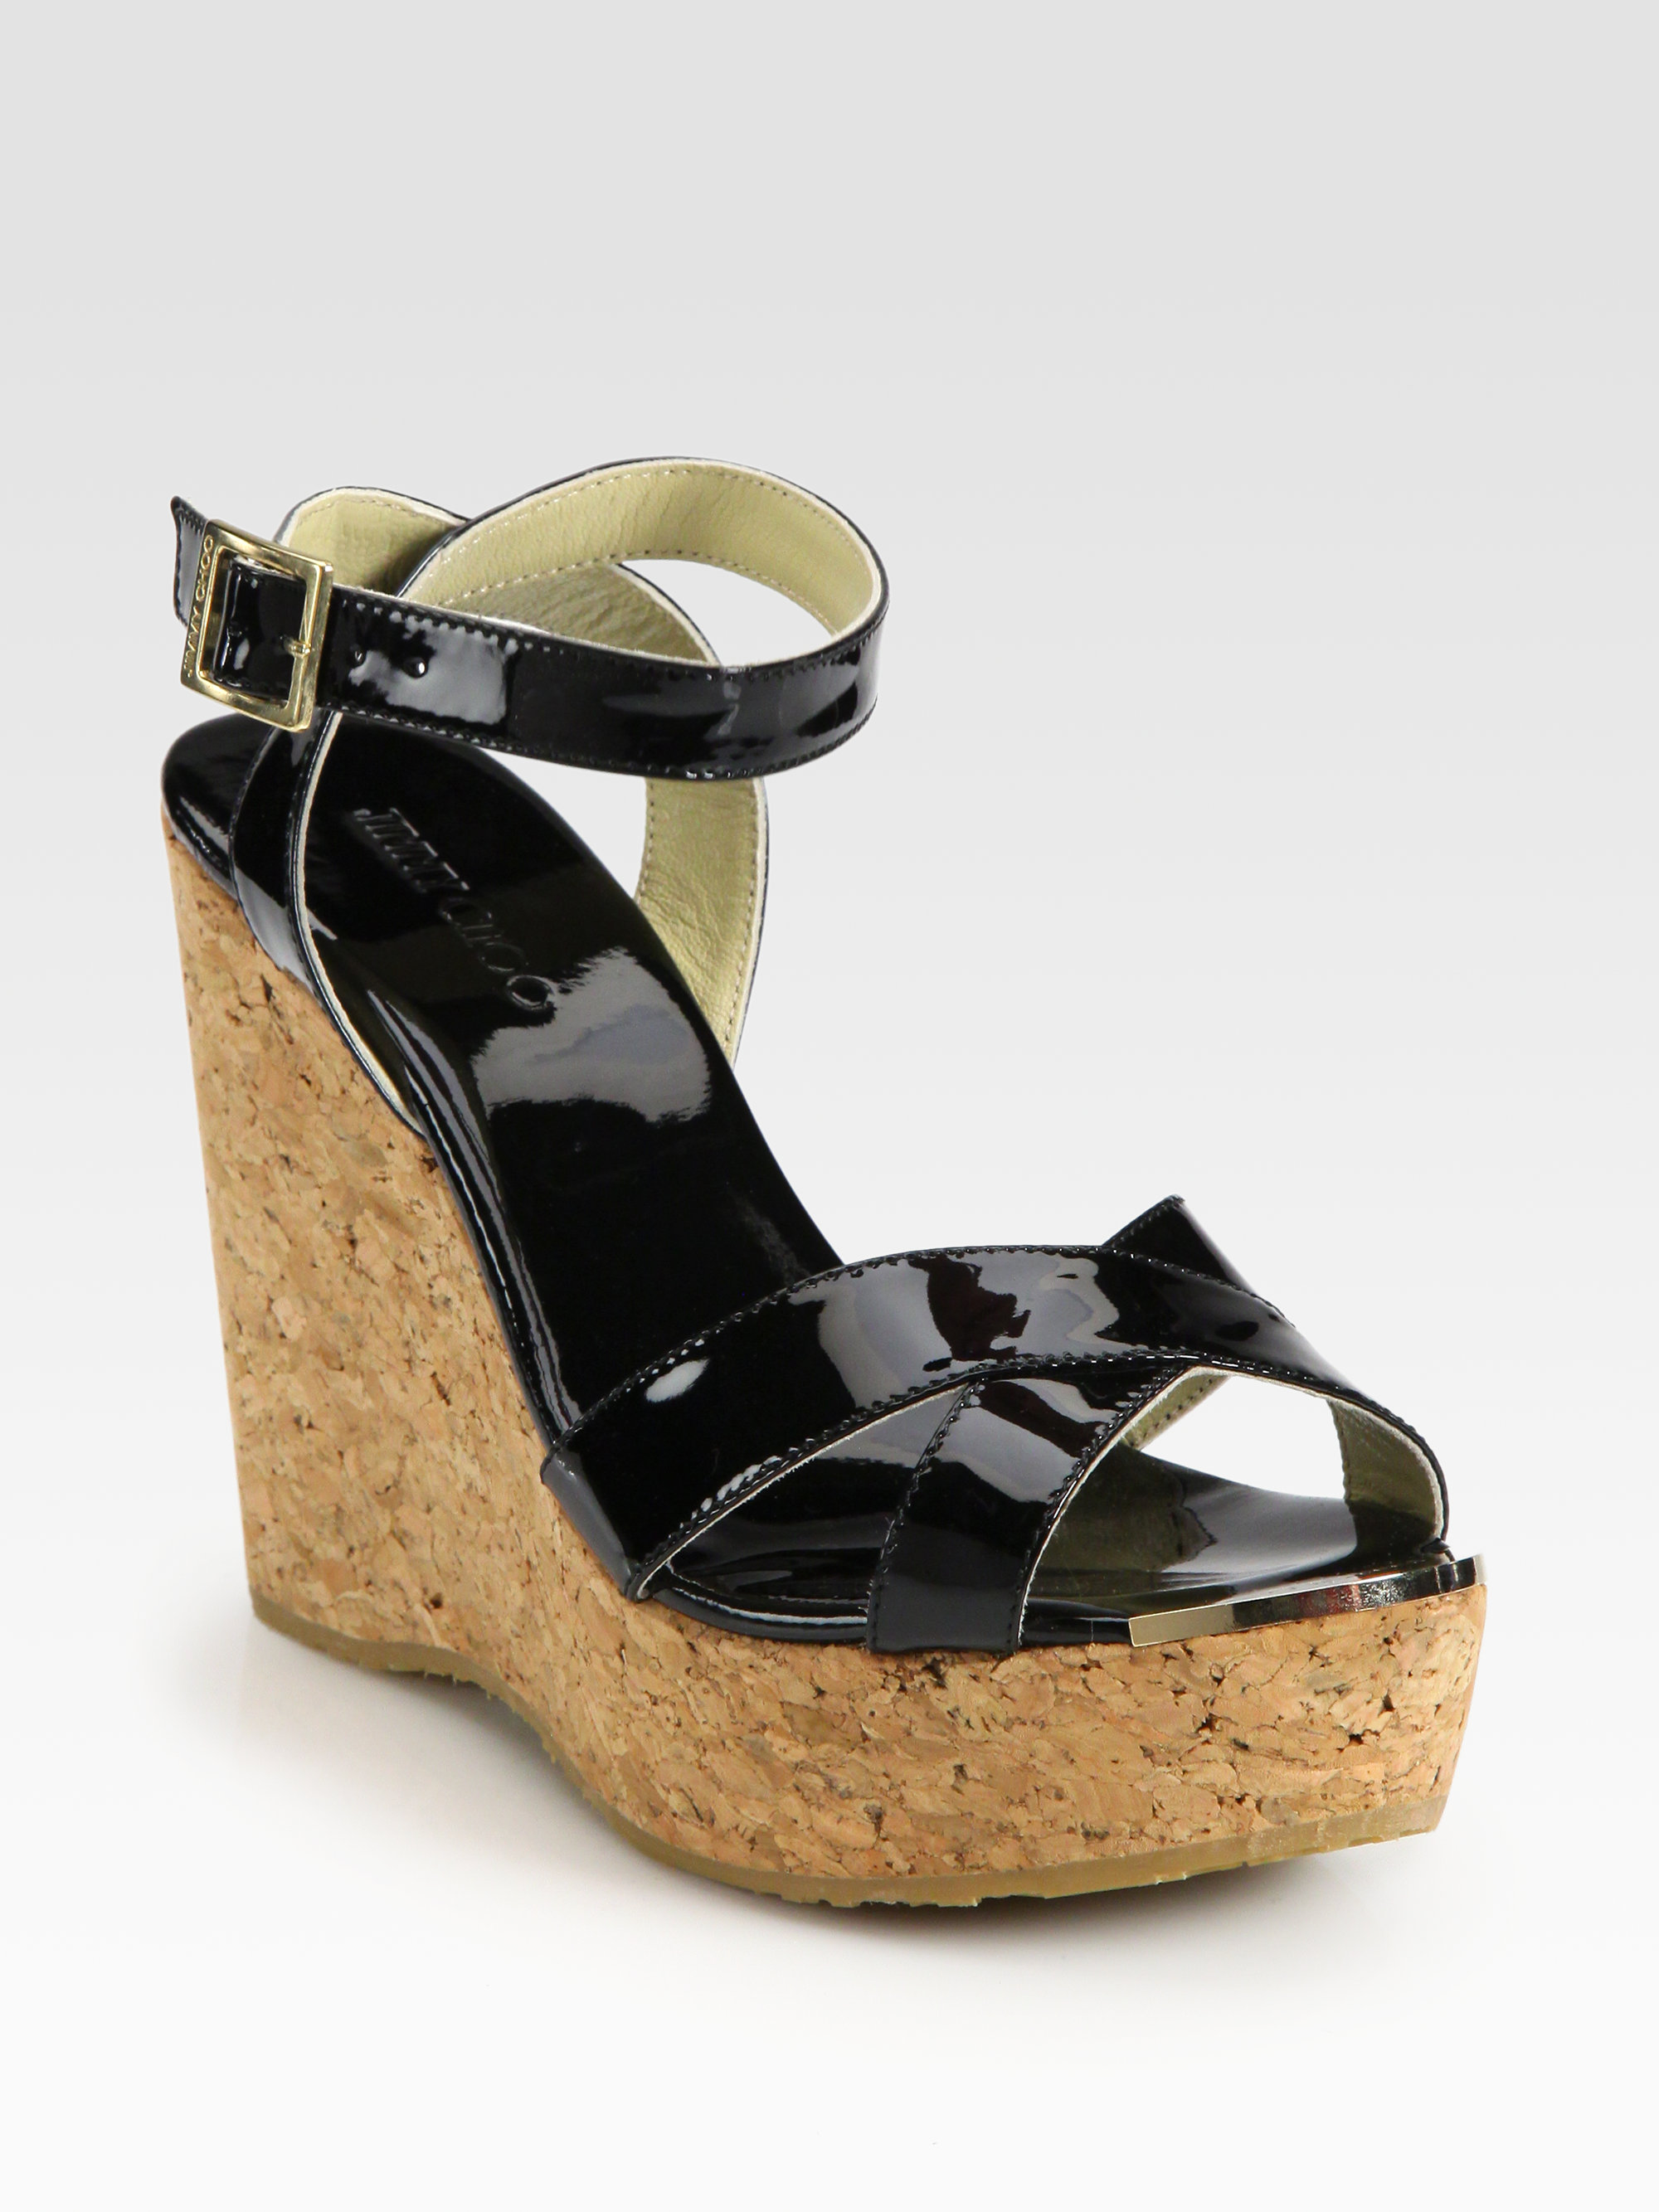 4b11b87a2a Jimmy Choo Papyrus Patent Leather And Cork Wedge Sandals in Black - Lyst